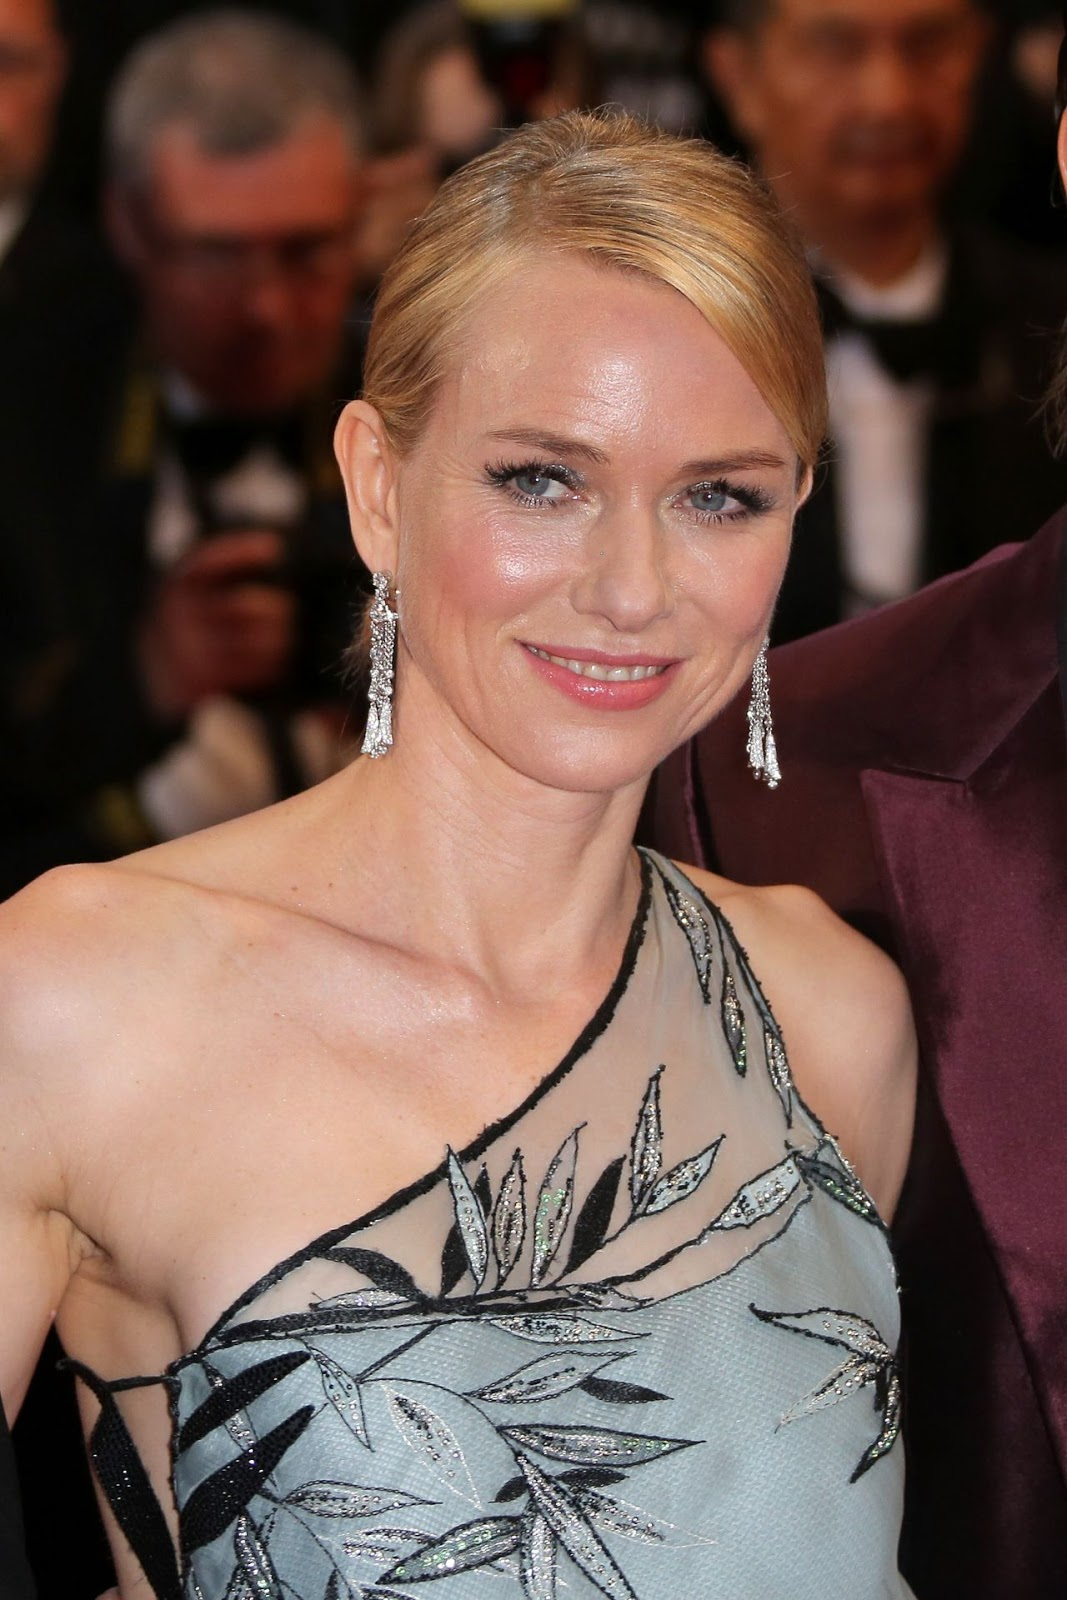 Full HQ Photos of Naomi Watts The Sea Of Trees Premiere 2015 Cannes Film Festival